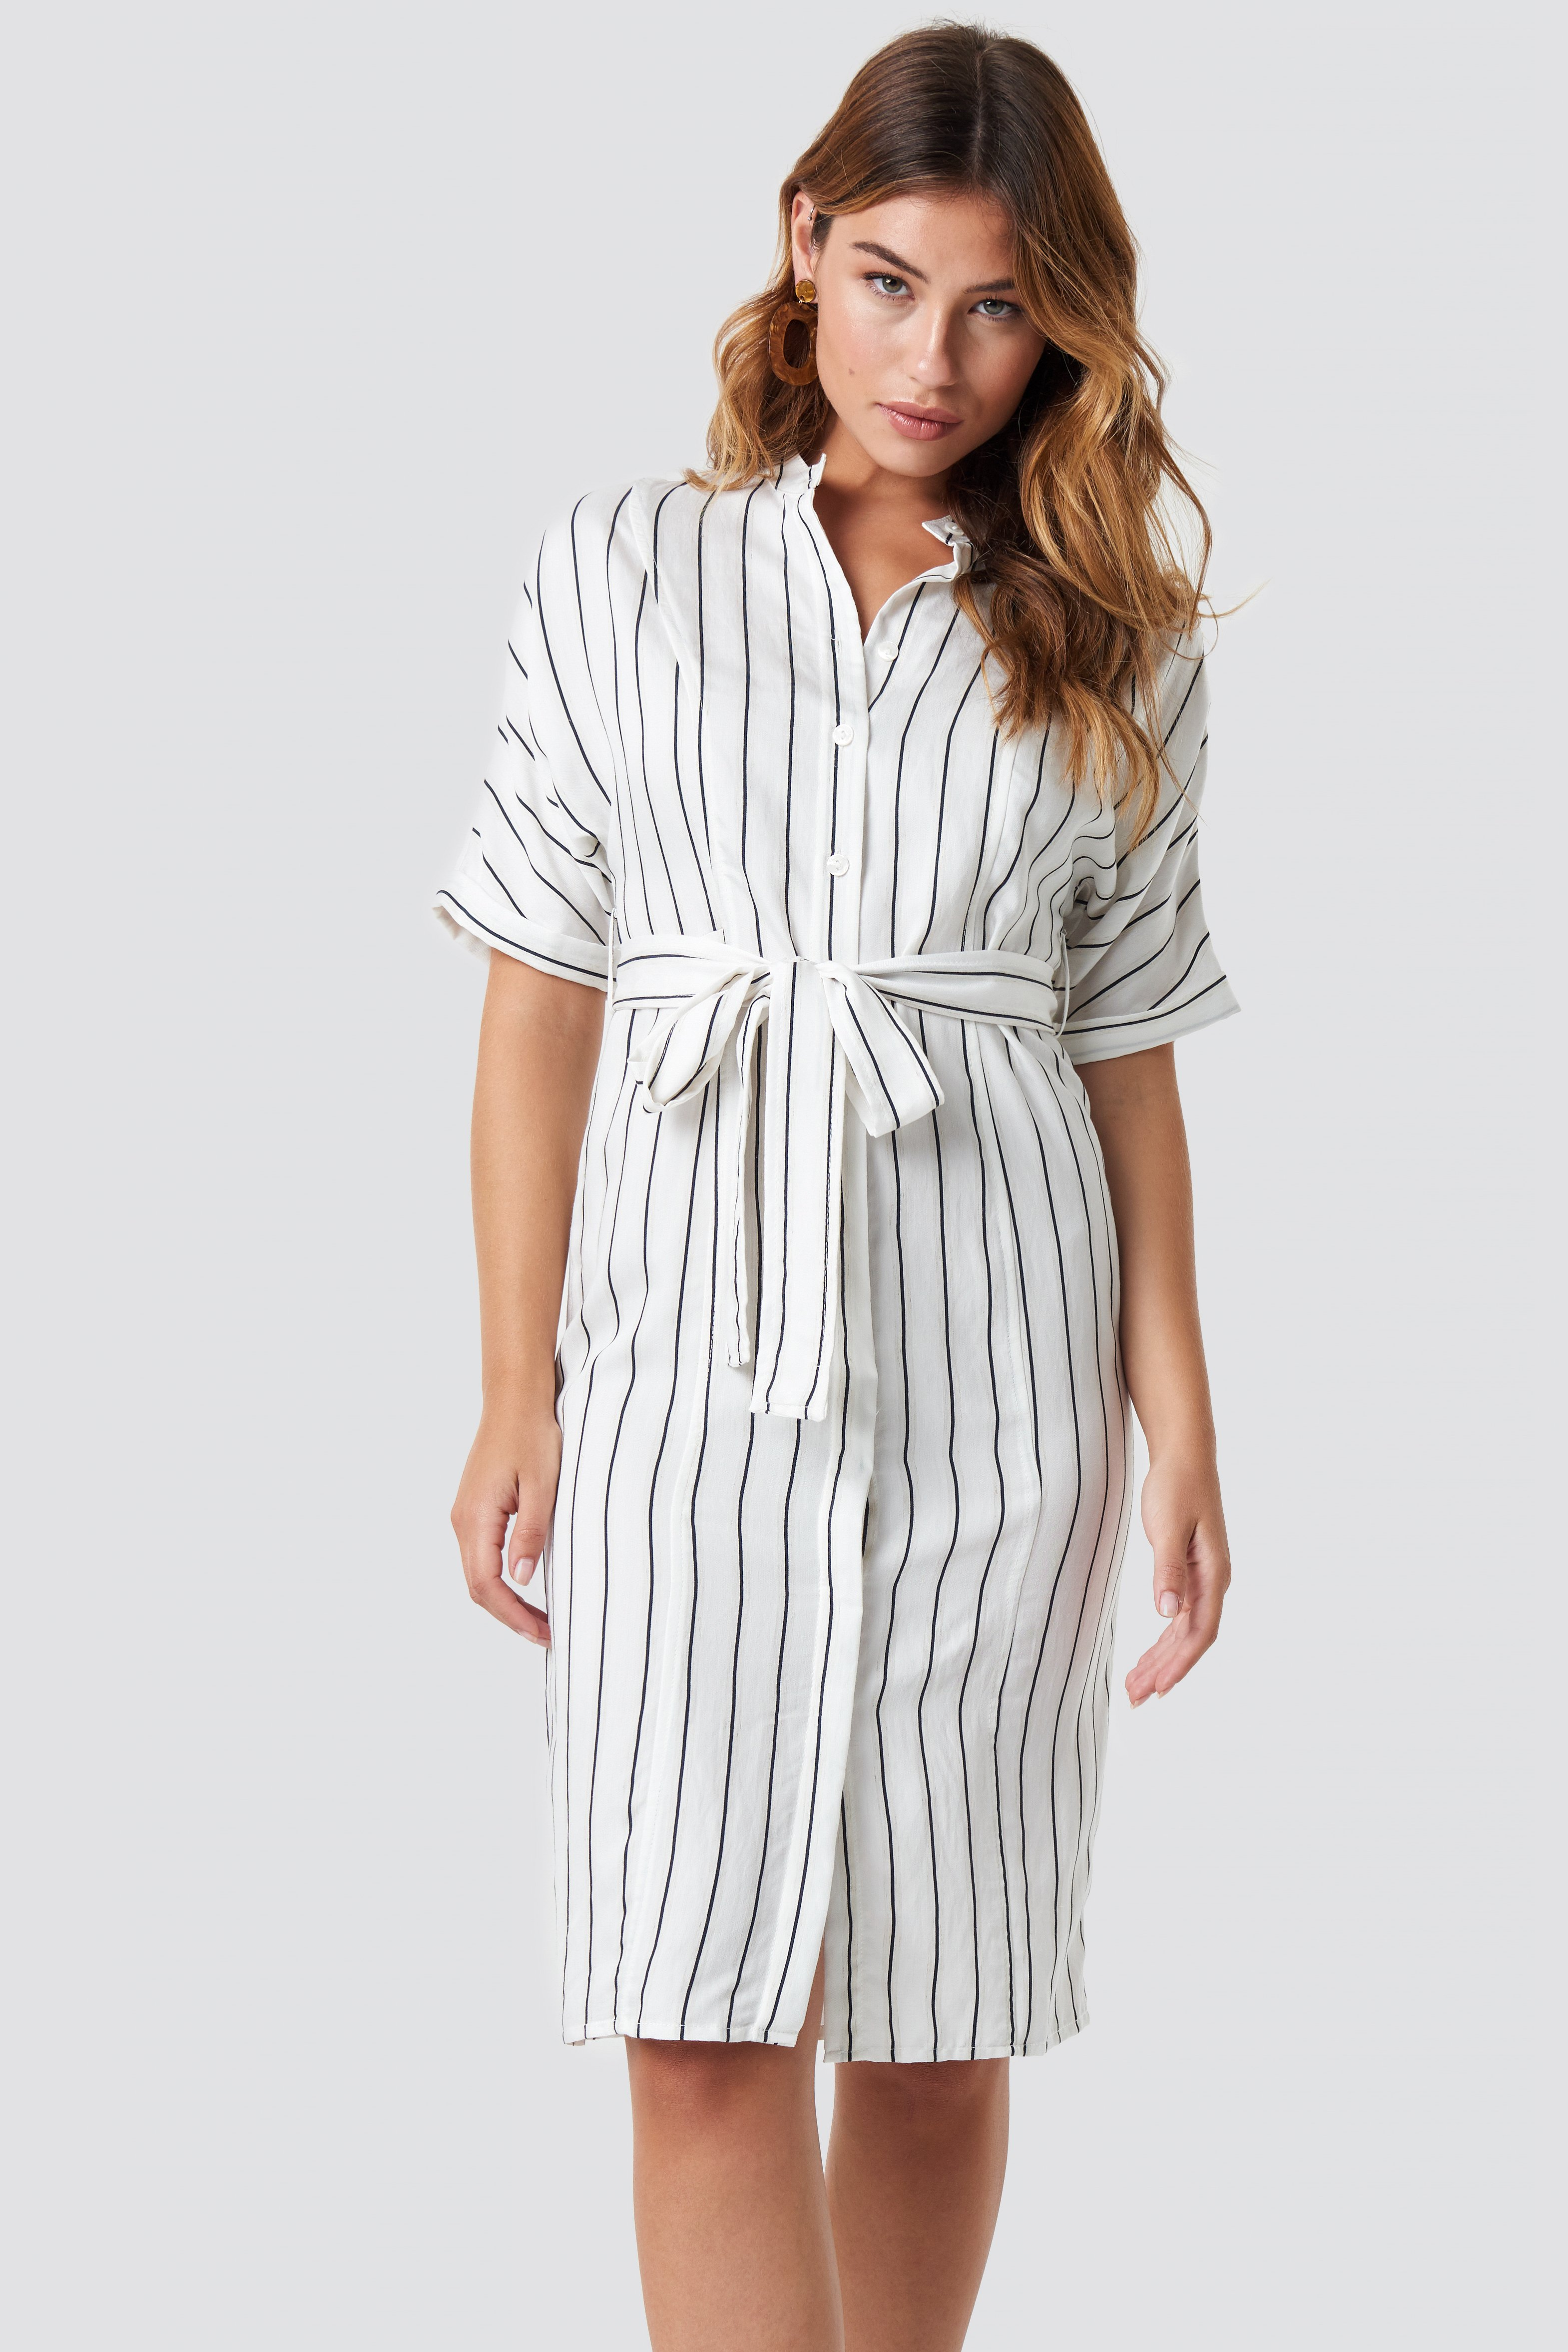 Agnes Midi Dress Offwhite  6e8f10d0a